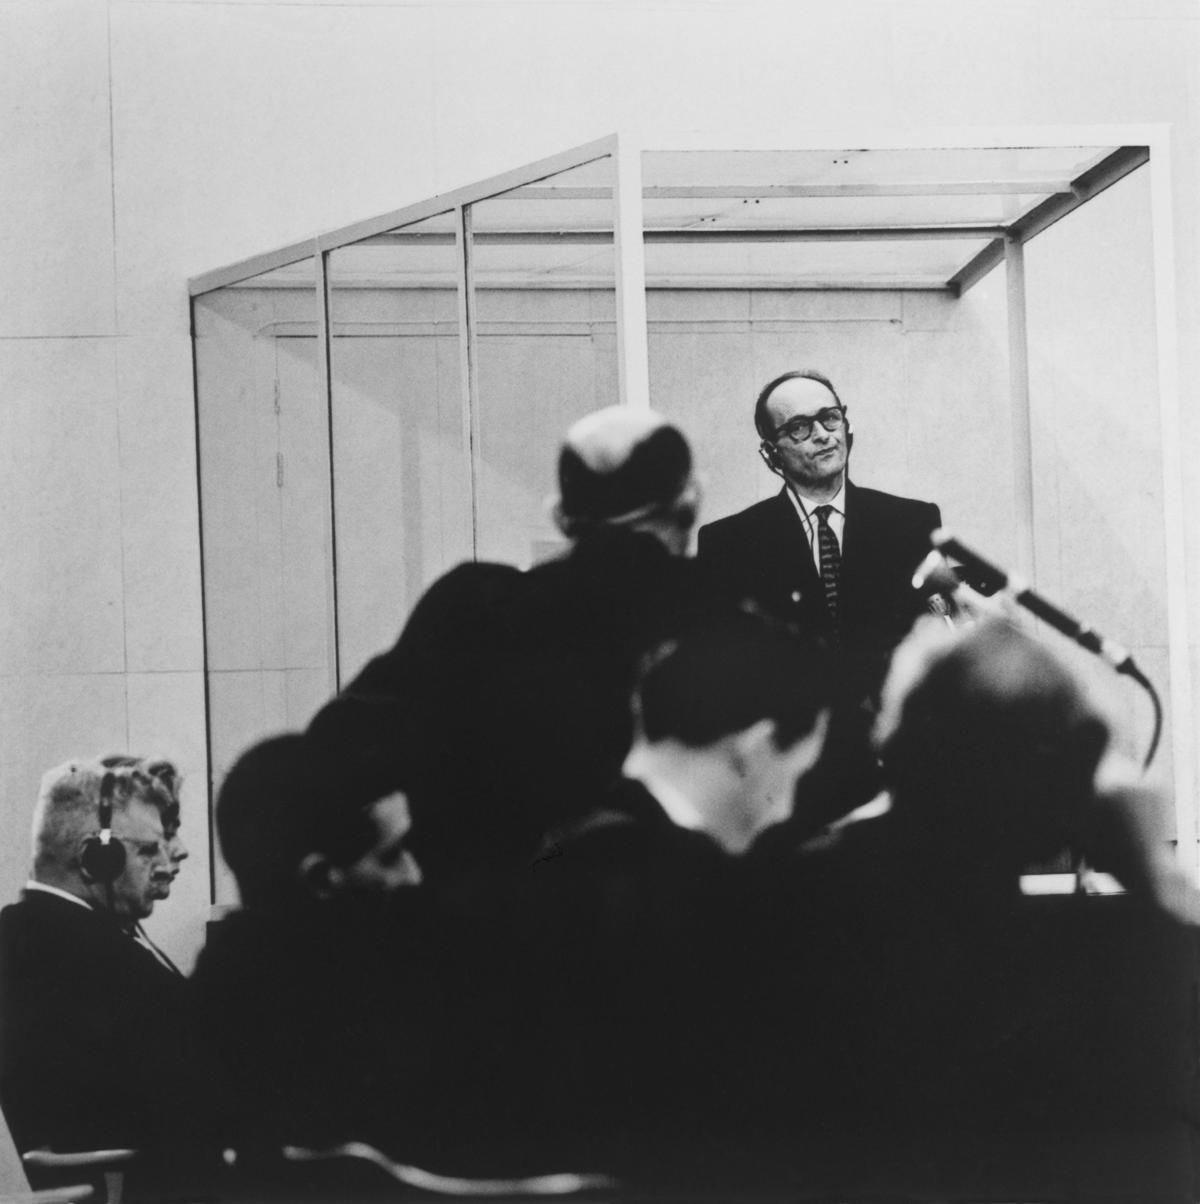 Eichmann, wearing glasses, a dark suit, and headphones, purses his lips at a lawyer in the foreground, who is questioning him, hands on his hips